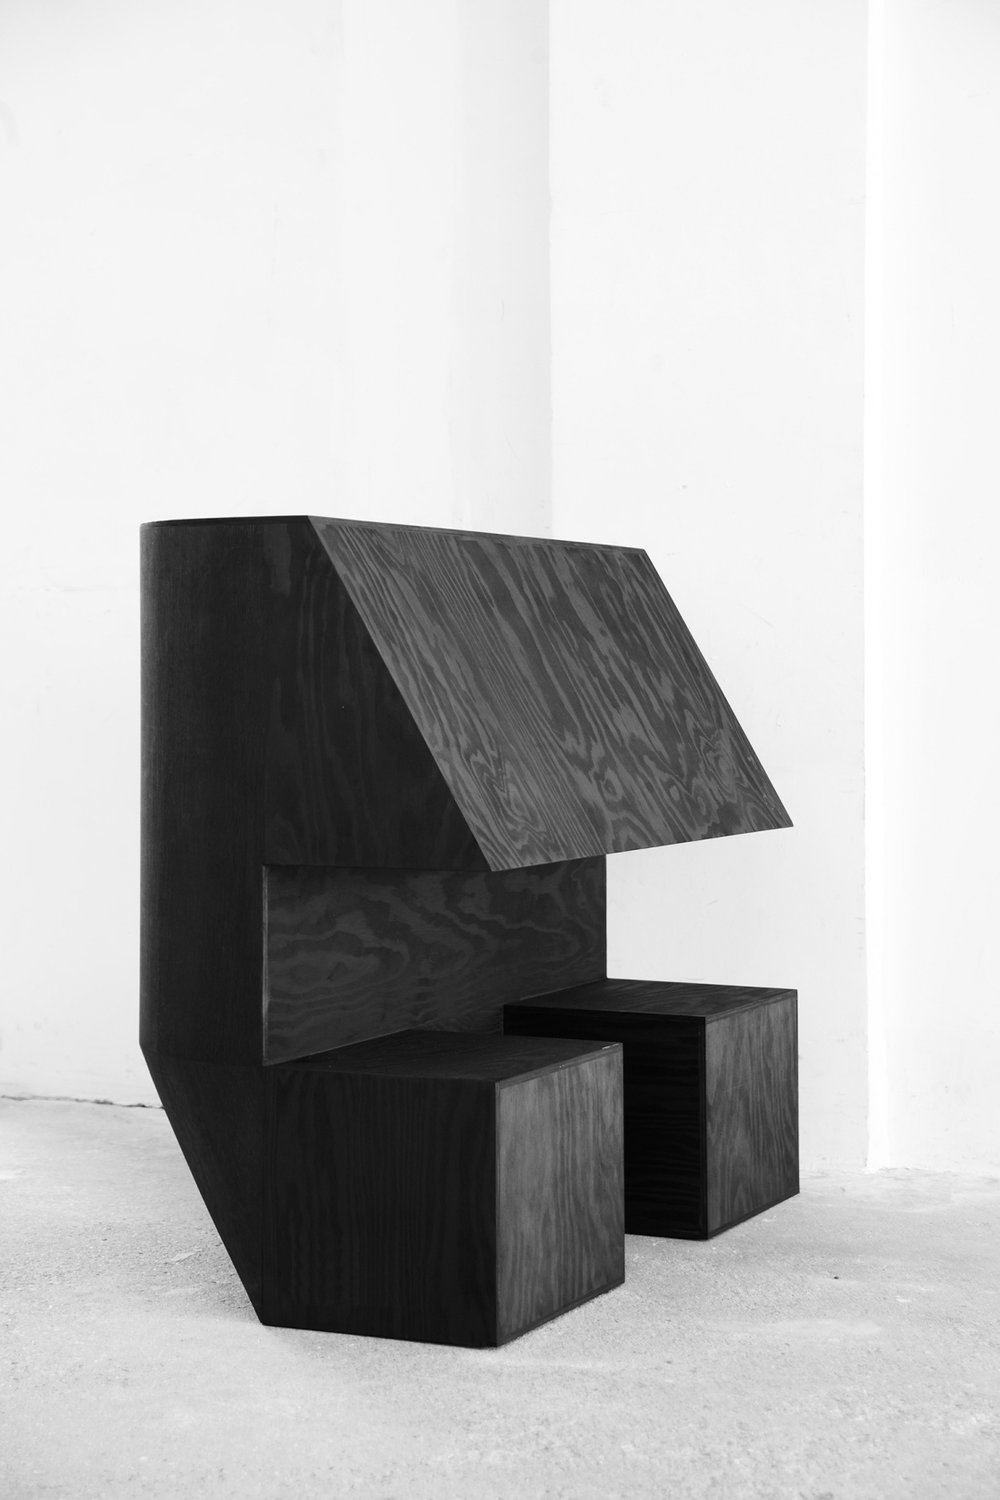 Rick-Owens-Furniture-6.jpg